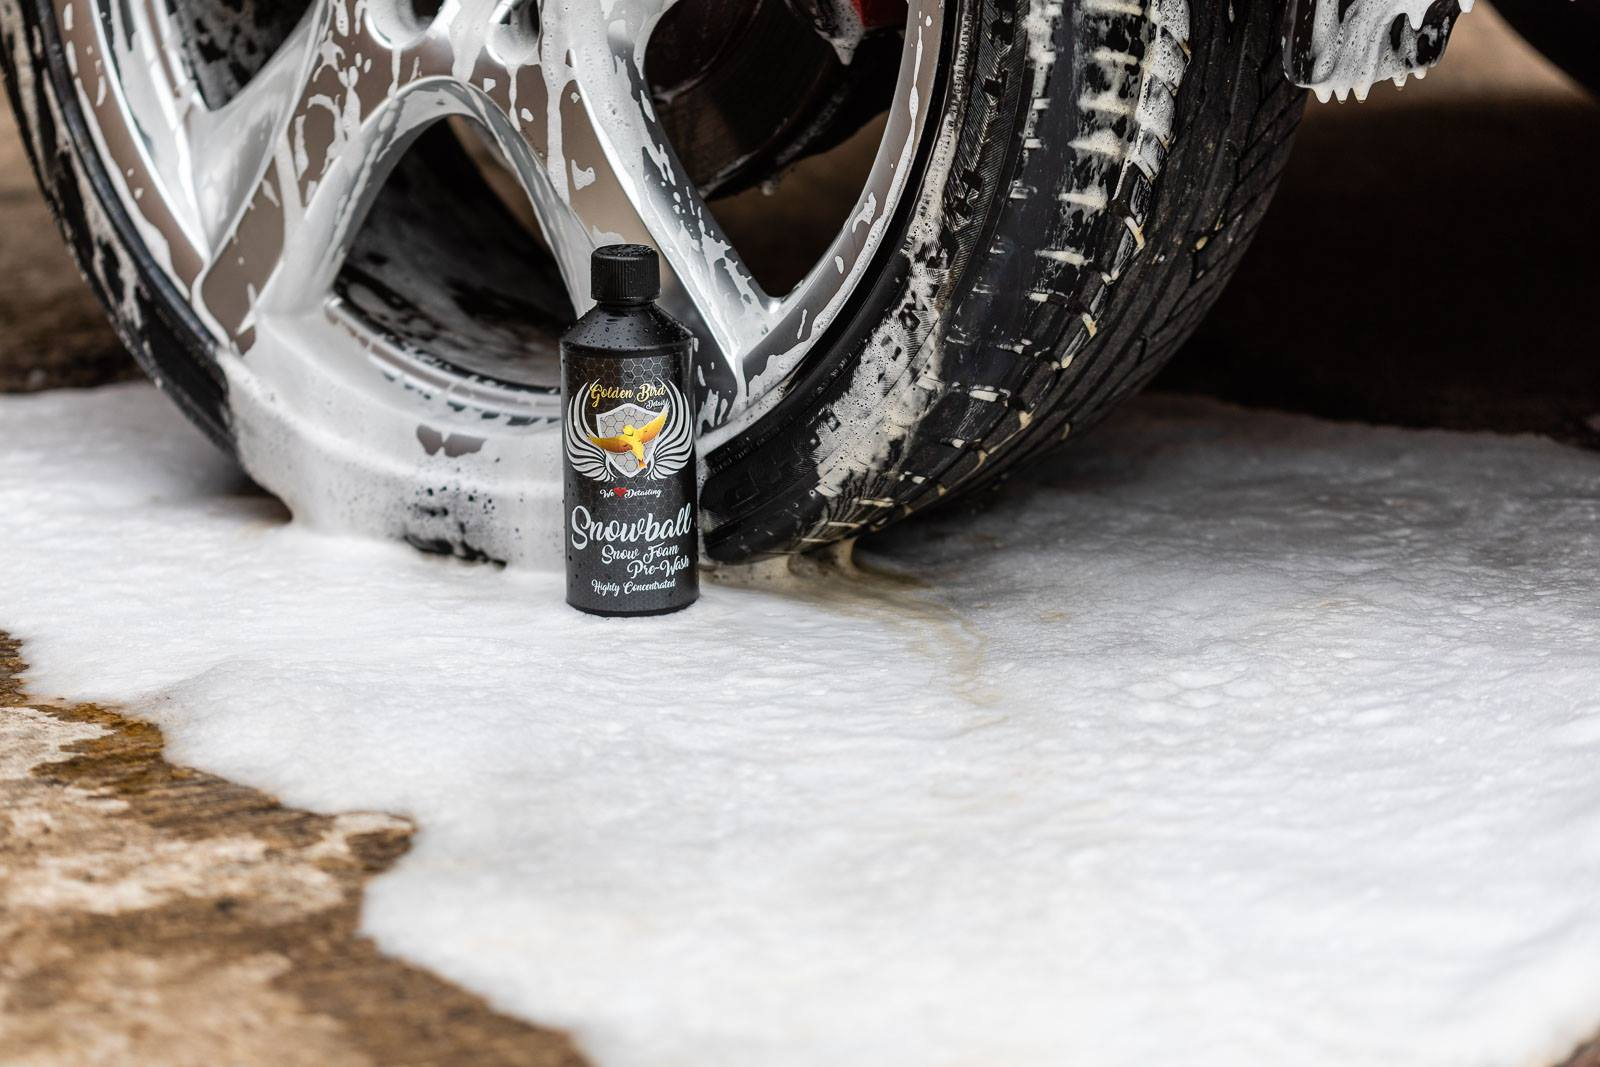 SNOWBALL  Snow Foam Pre-Wash  Highly Concentrated by Golden Bird Detail